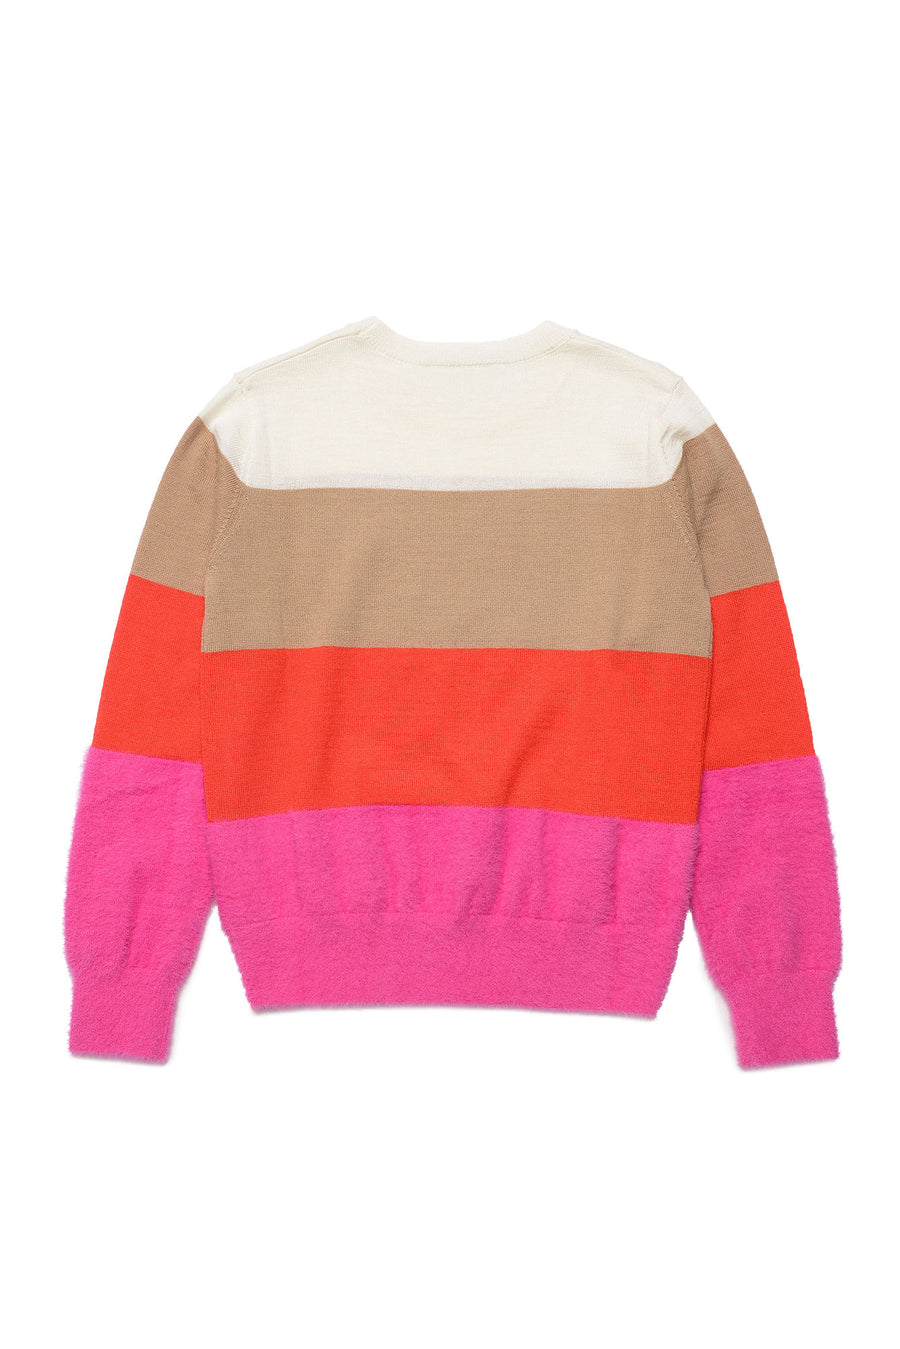 Multicolor Sweater by Trussardi